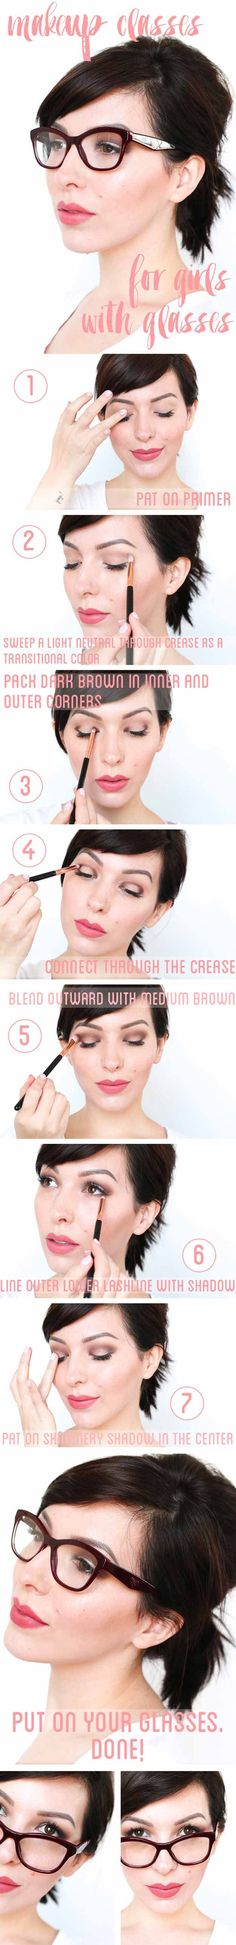 Makeup Tips For Glasses - Makeup Tutorial for Girls with Glasses - Simple Step by Step Tutorials for People with Eye Glasses - Easy Beauty Tips for Different Face Shapes, Make Up Ideas and Awesome Hairstyles for Different Types of Eyeglasses - Eyeliner, Foundation, and Nail Art Ideas that Go Great with Lots of Different Looks - thegoddess.com/makeup-tips-for-glasses